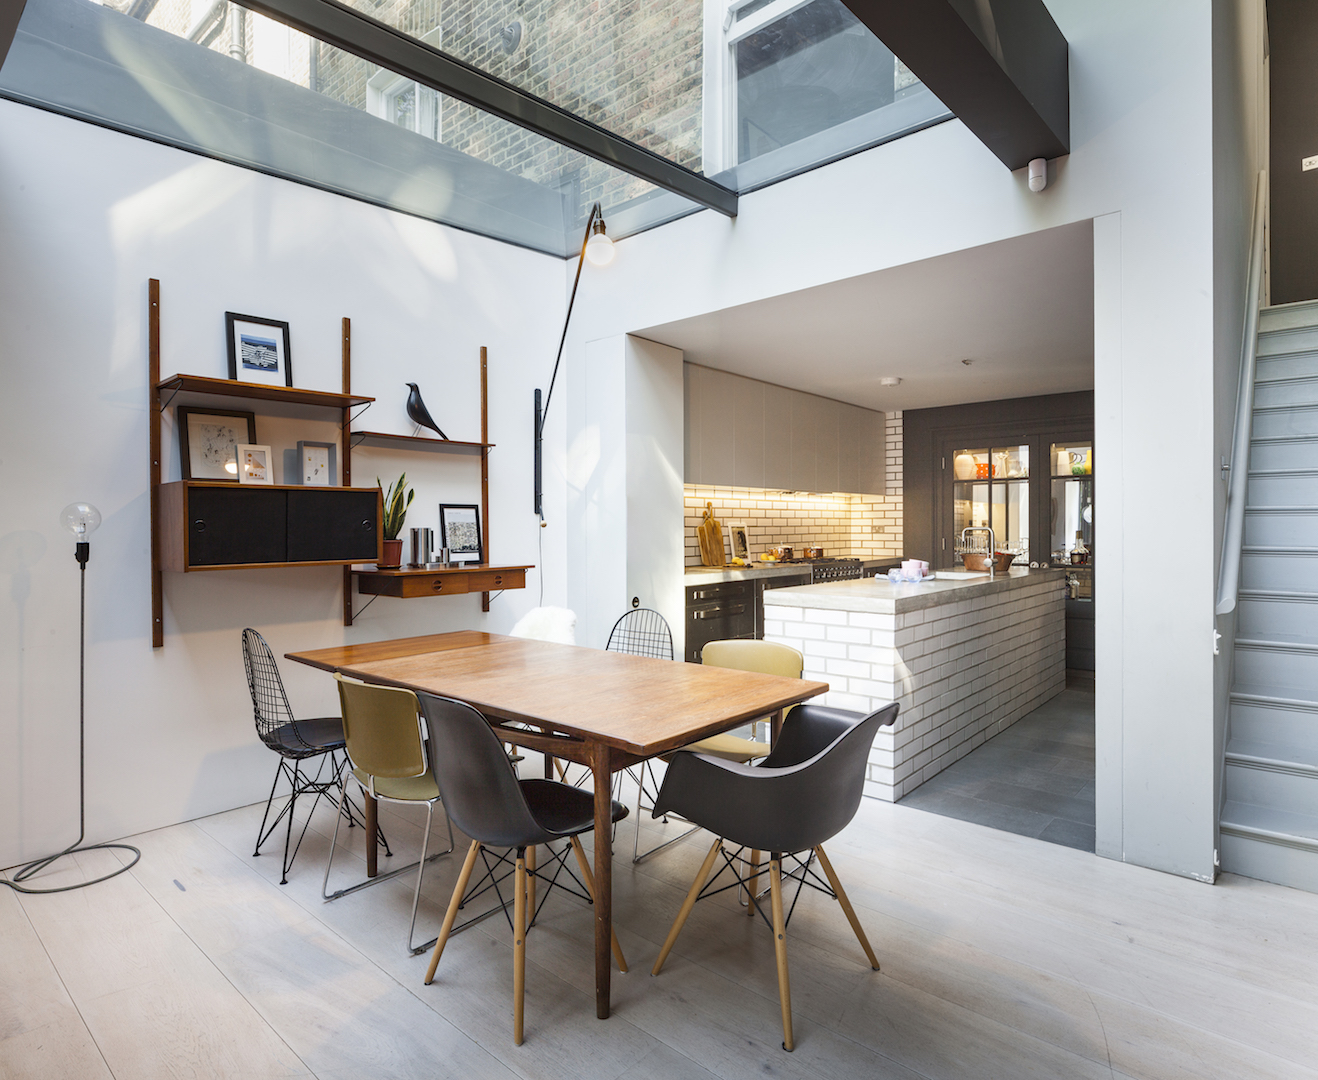 The Study House dining room, kitchen by Studio 30 Architects